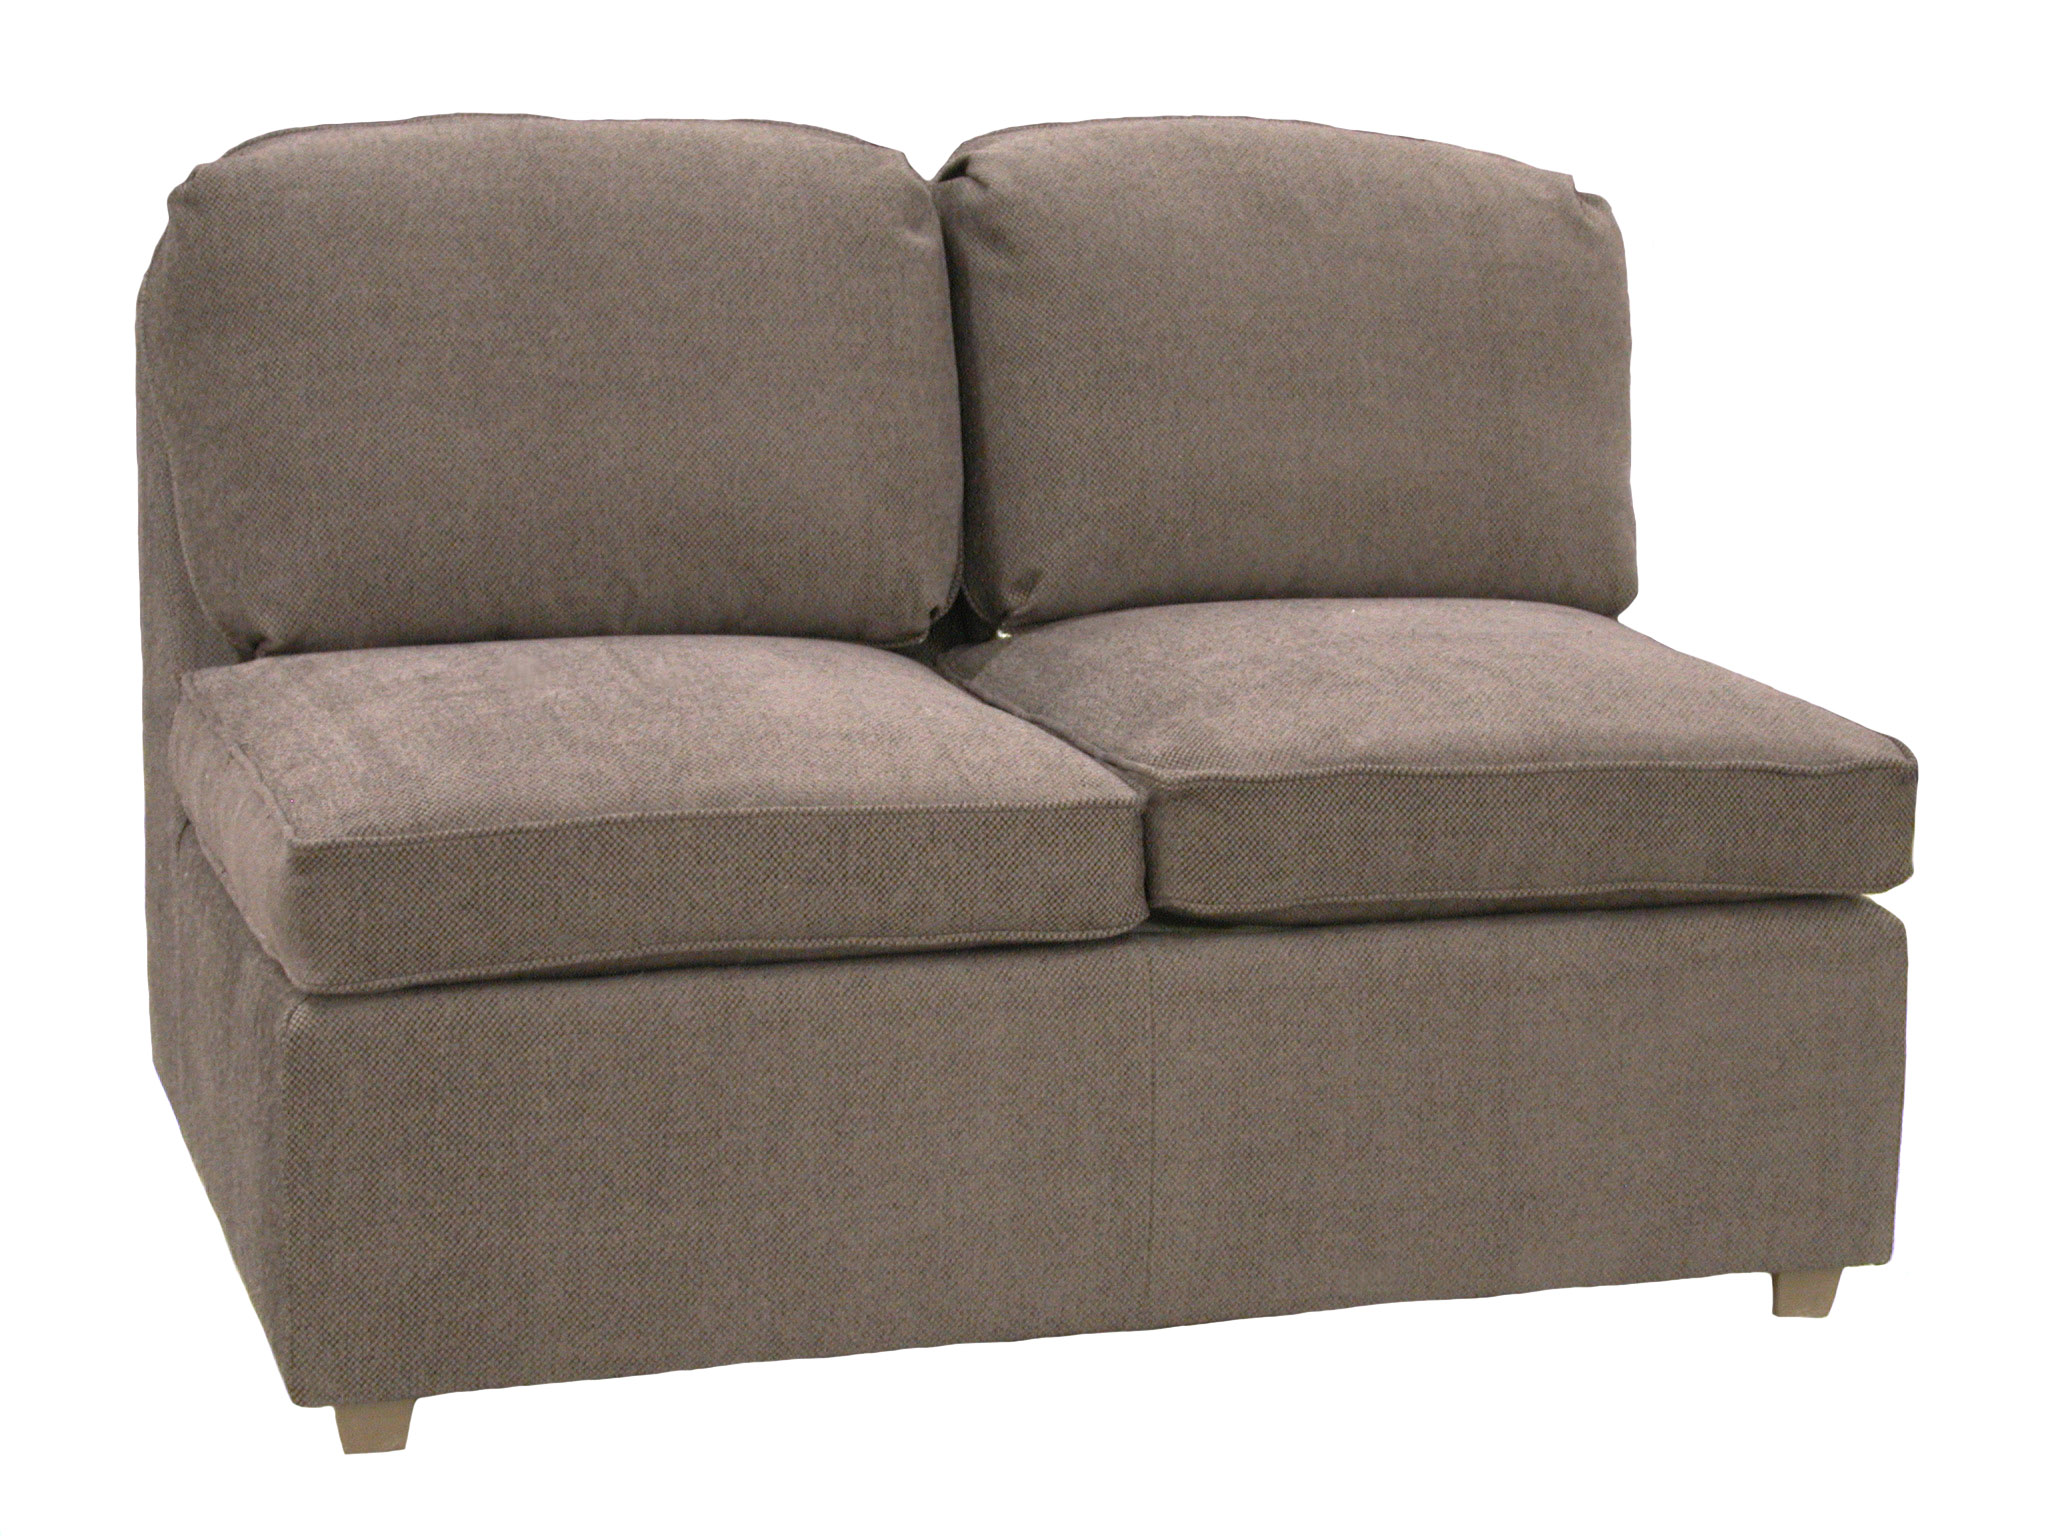 Roth Armless Loveseat